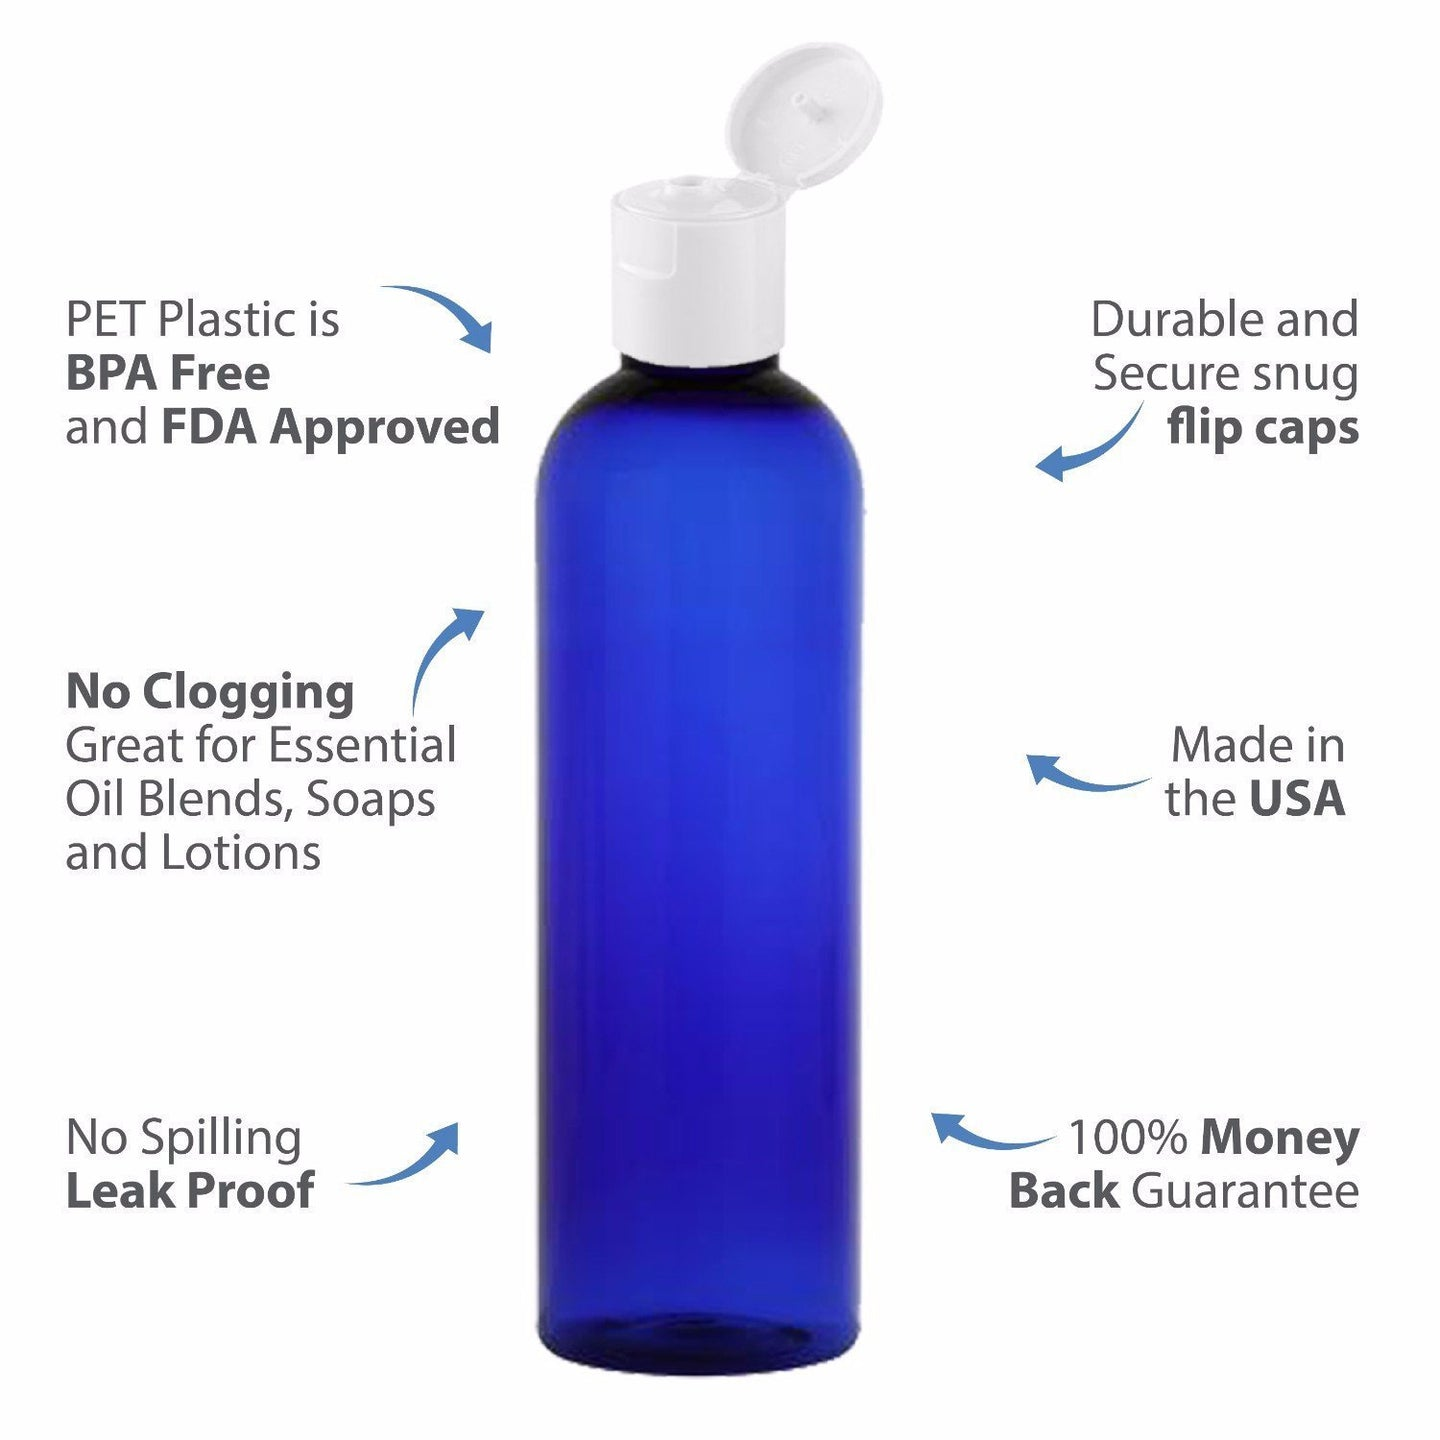 MoYo Natural Labs 4 oz Travel Bottles, Empty Travel Containers with Flip Caps, BPA Free PET Plastic Squeezable Toiletry/Cosmetic Bottles (Neck 20-410) (Pack of 30, Blue)